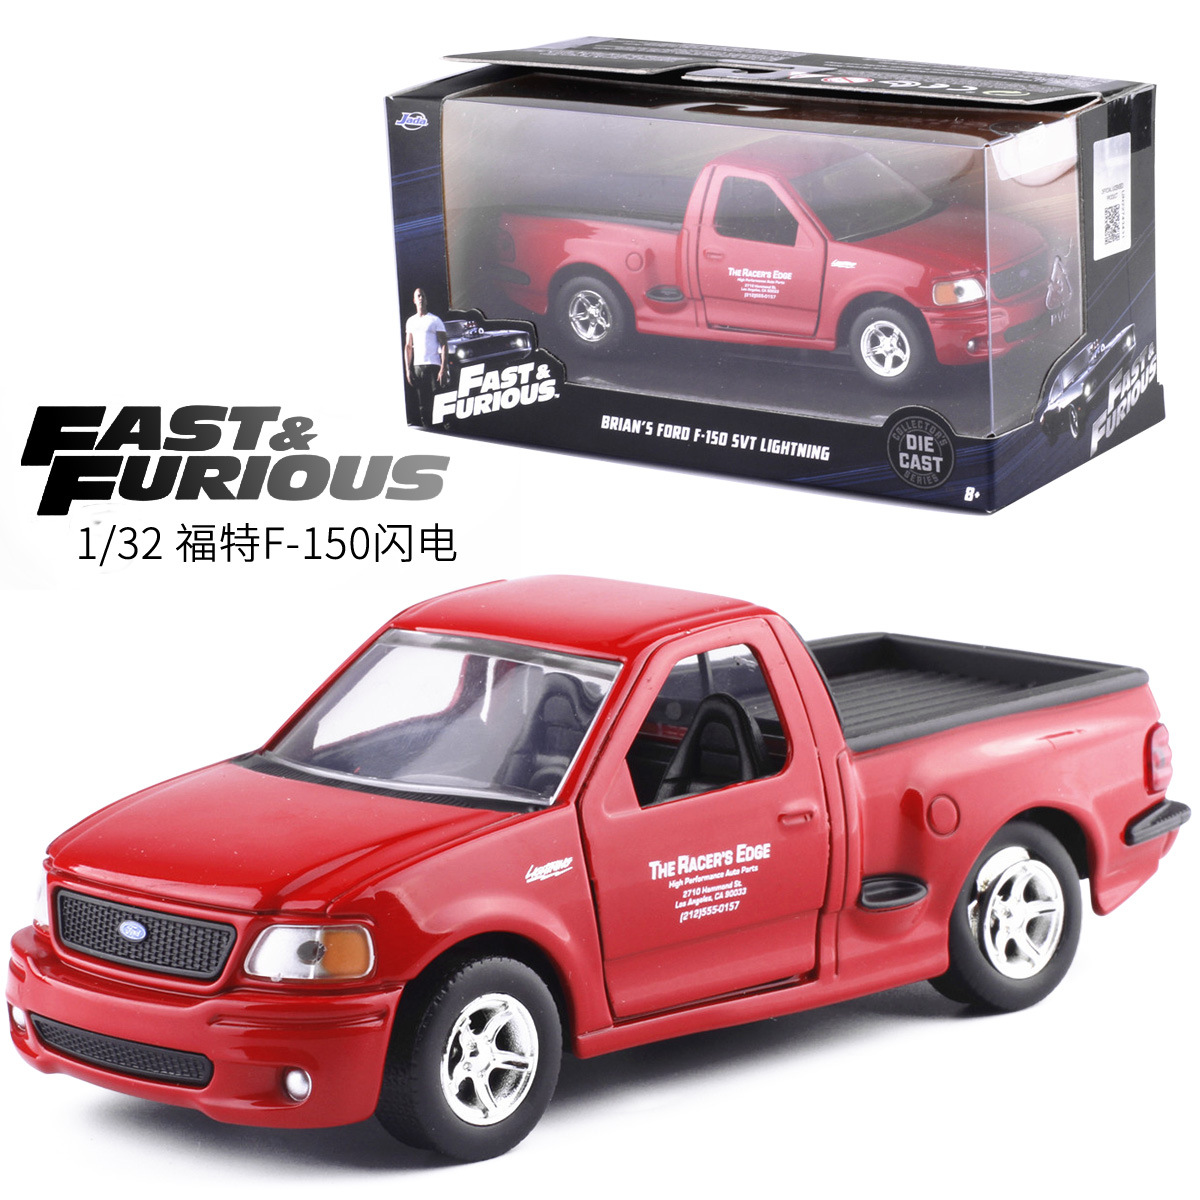 Jada1:32 Fast & Furious Alloy Car Ford F-150 SVT 1999 Metal Die cast Classical Truck Model Toy Collection Toys For Children Gift